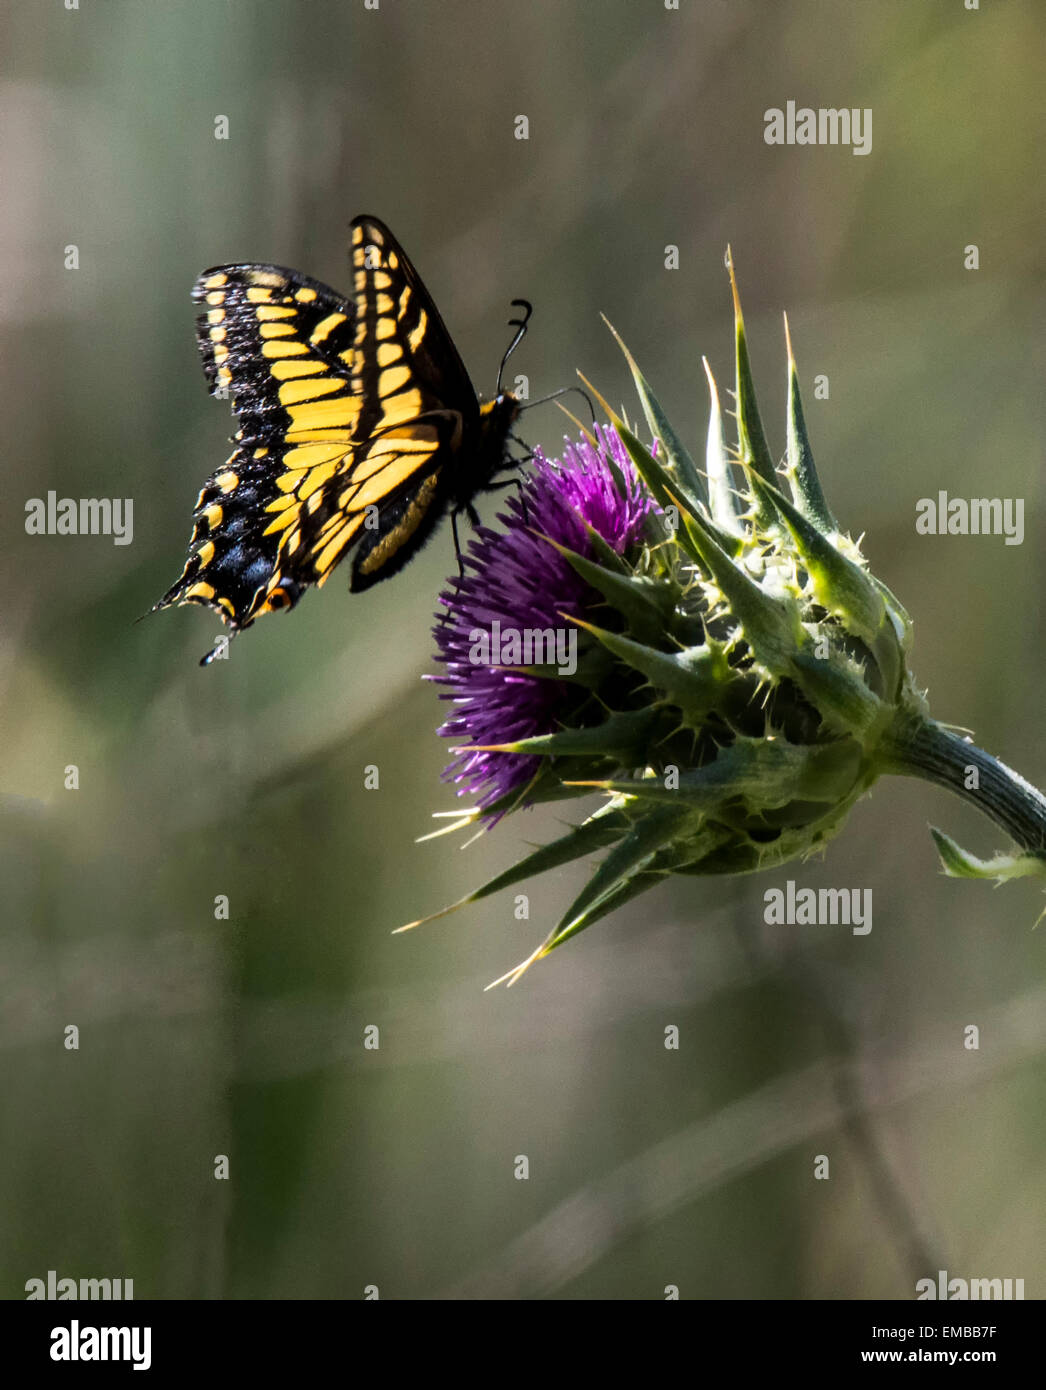 Swallowtail butterfly feeding on nectar from Thistle - Stock Image